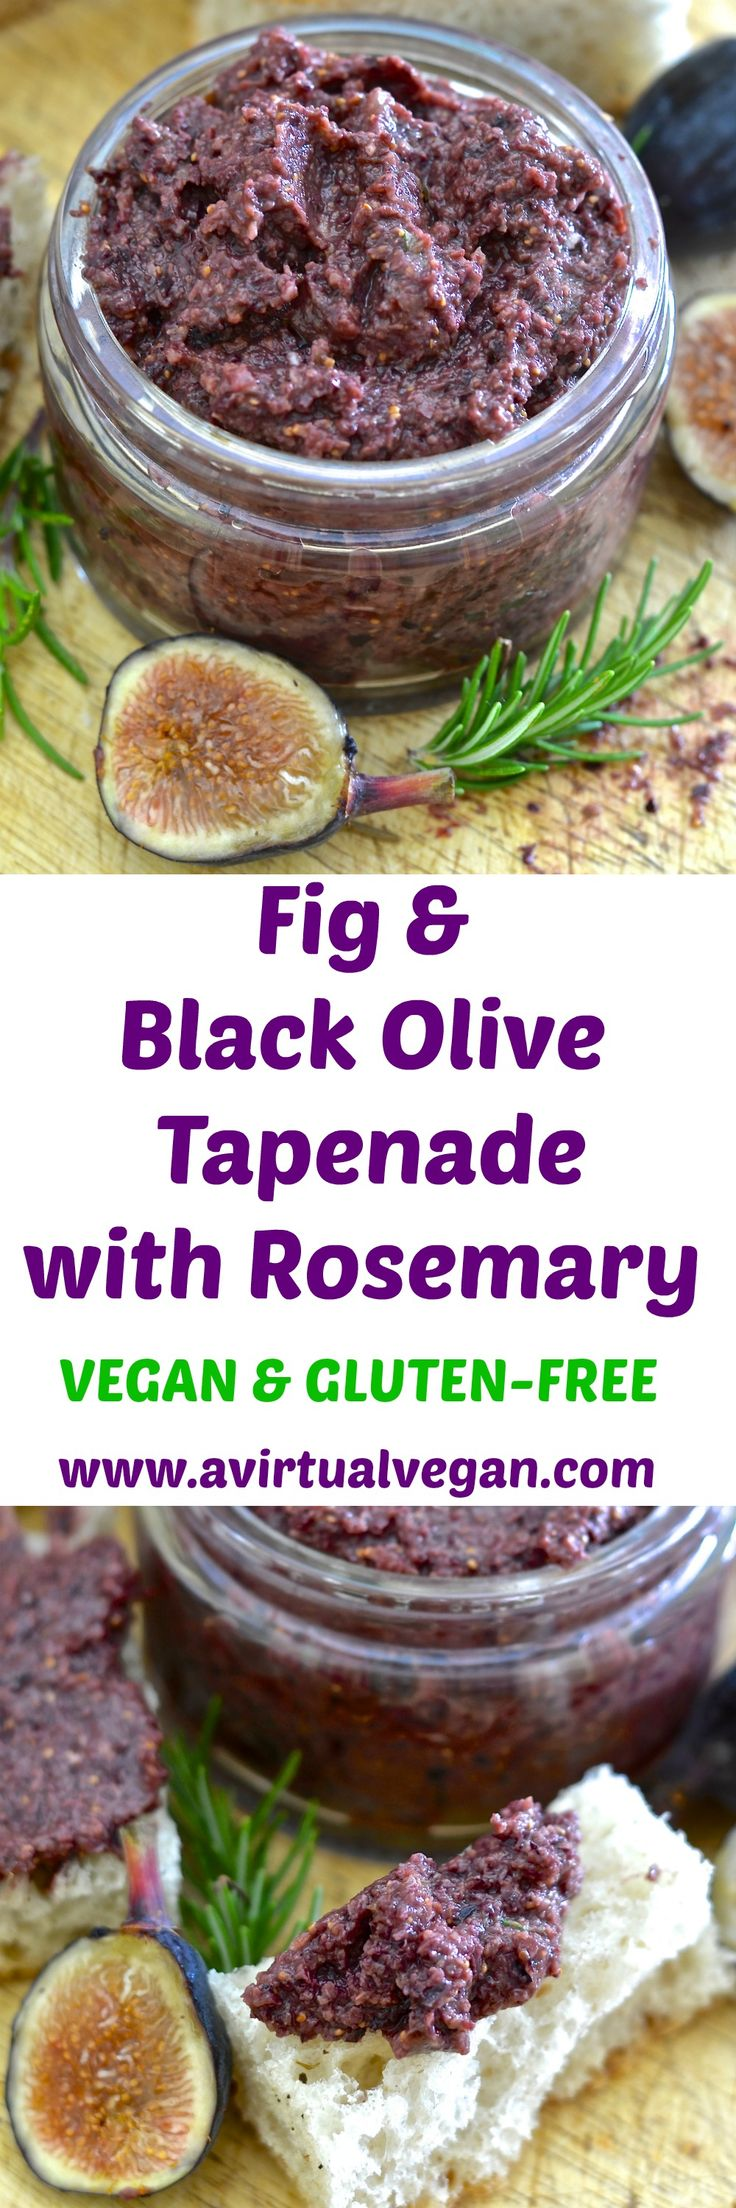 This rich, soft Fig and Black Olive Tapenade with Rosemary is my twist on traditional tapenade. Dark, deep & earthy olives are blended with ripe, plump & juicy figs to make an irresistibly delicious spread with a striking balance of sweet & savoury flavou